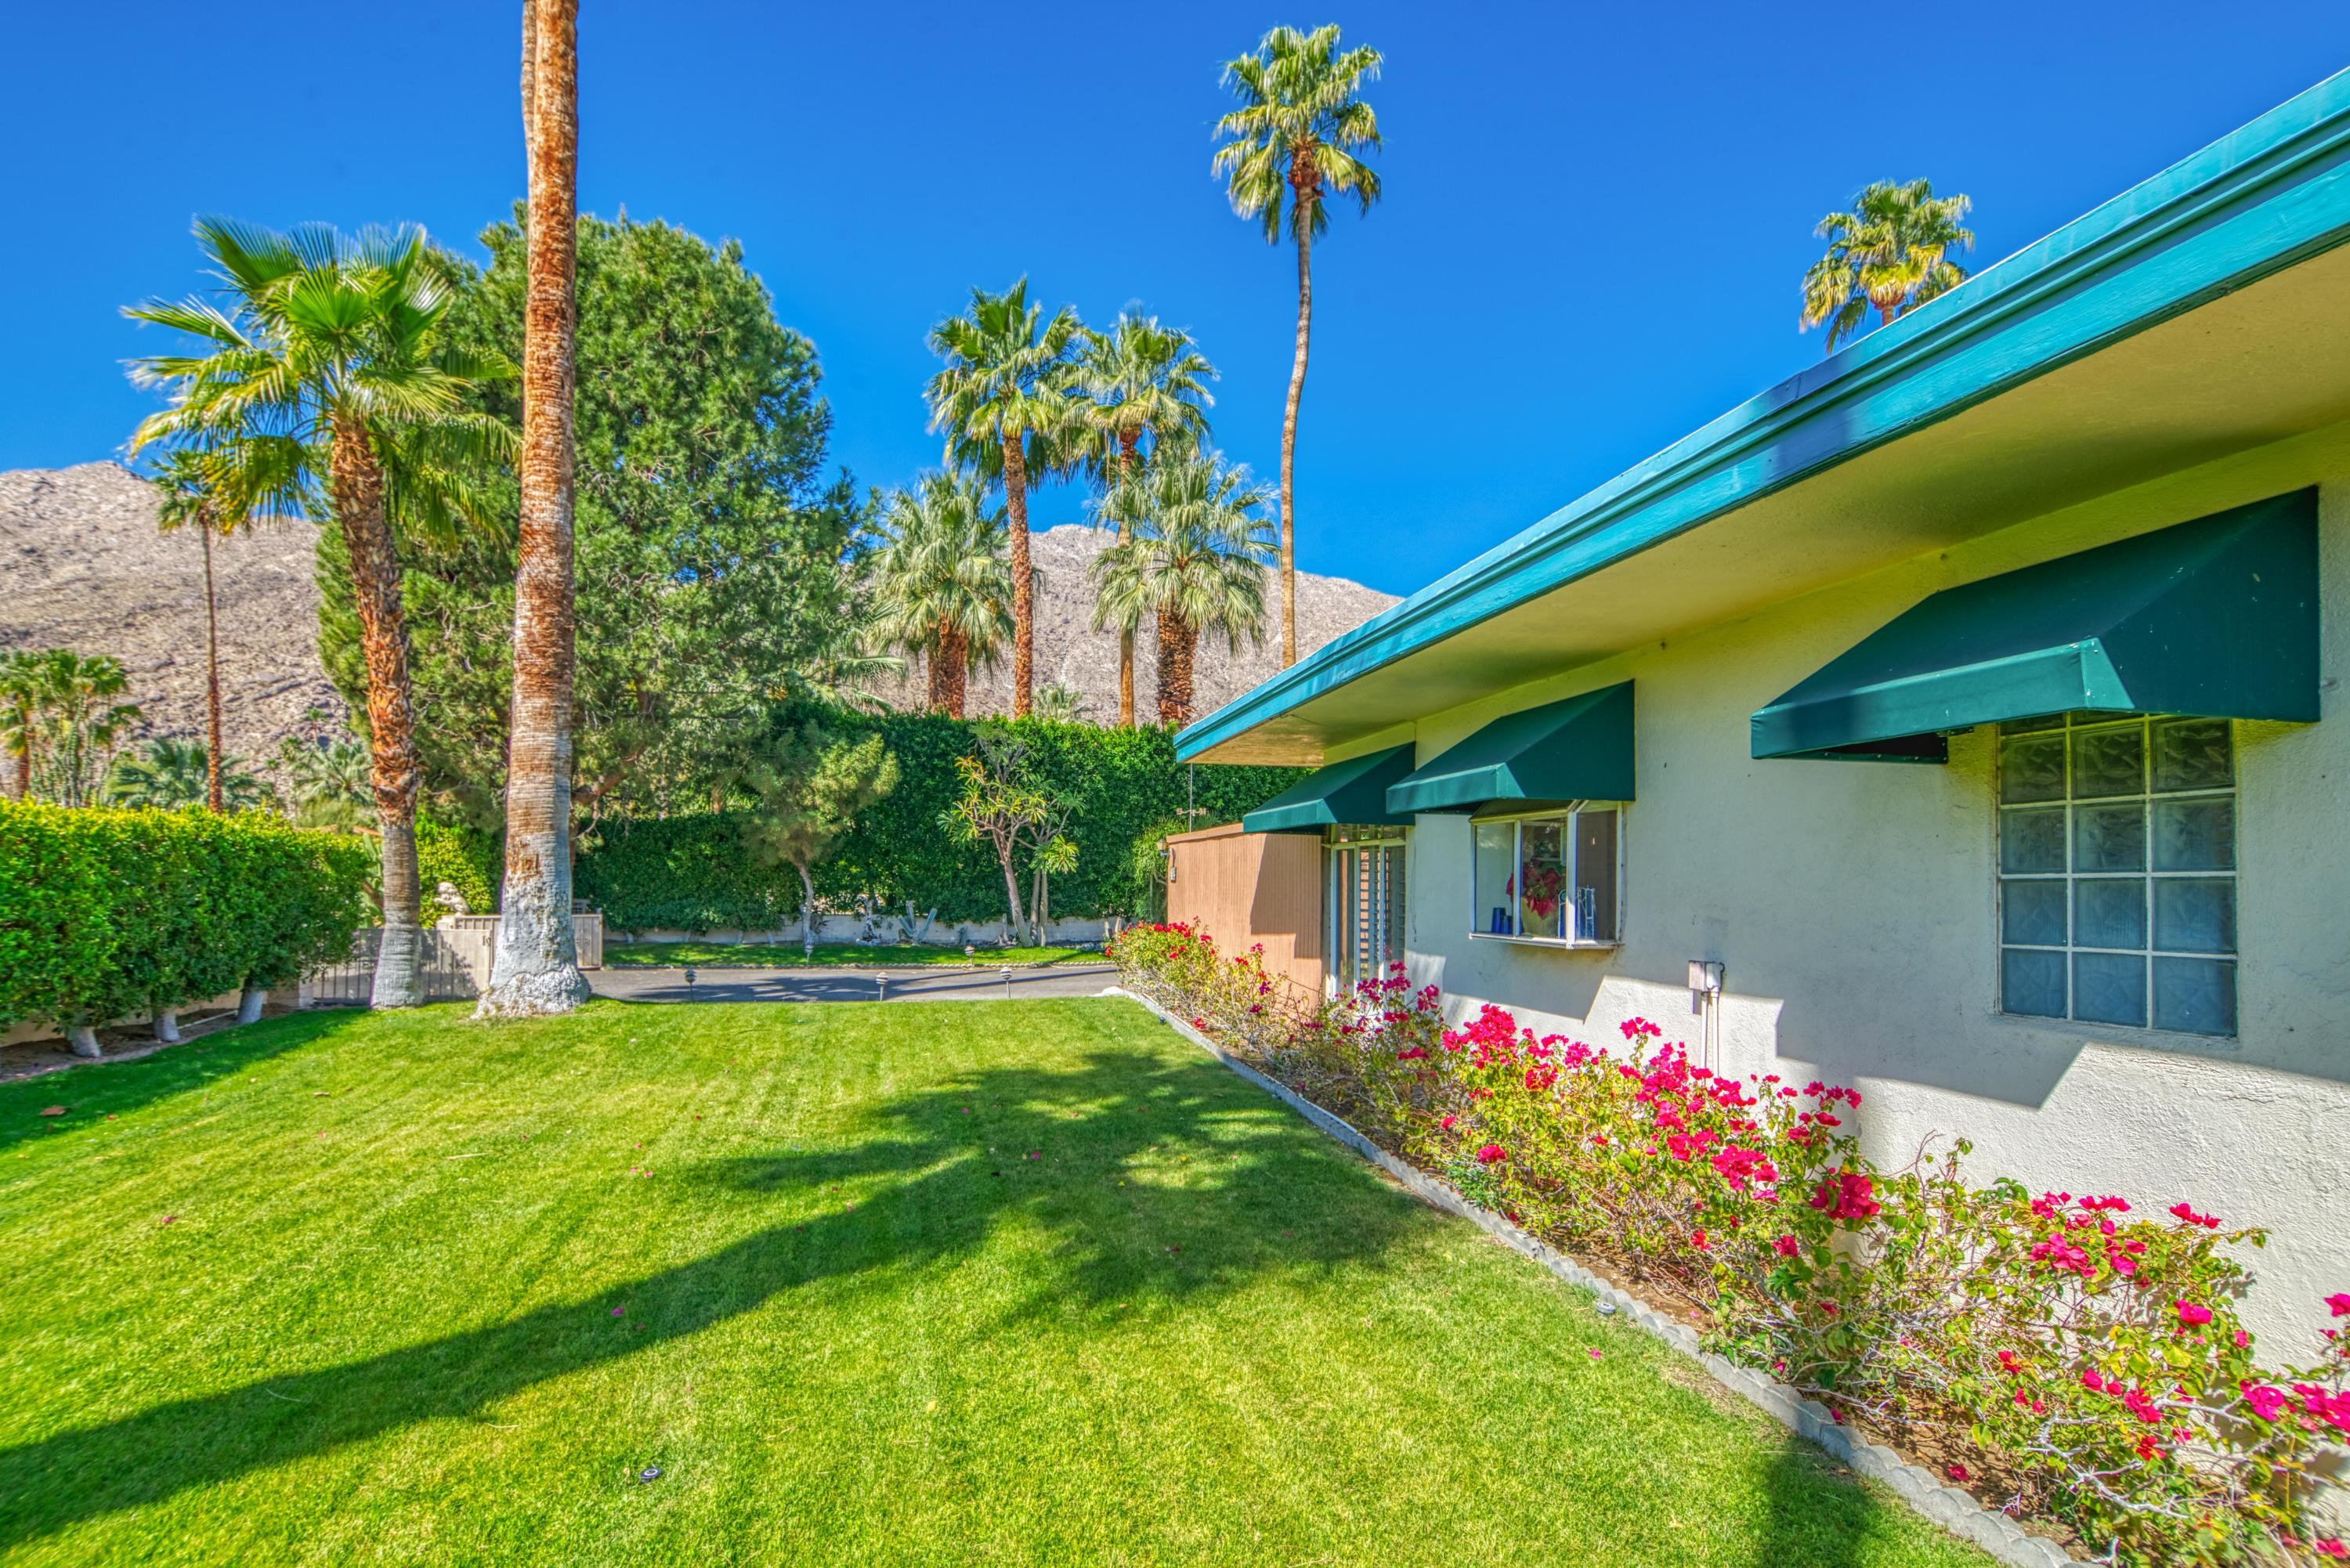 Attention Investors, Contractors, and Mid-Century Enthusiasts!  Are you looking for an opportunity to purchase and renovate a home in South Palm Springs that is located within a block from South Palm Canyon Drive's restaurants and retailers?  If so, come check out this one today!  Located on land you own in Tahquitz River Estates, this 3 bed (possibly 4 bed) home with recent upgrades including a freshly resurfaced driveway, newly installed roof, and a re-plastered pool is ready for you to take to the next level!  Highlights include the front and back yards that offer mountain views, the south-facing private courtyard that leads to the front door of the house, the living room with fireplace, and the adjacent dining room that connects to the south-facing kitchen that has views!  Inside laundry room plus access to the side yard, too!  Master bedroom has a sliding glass door that opens to the pool, a walk-in closet plus separate wardrobe closet and a private bath with walk-in shower. Bedroom Two and Bedroom Three are close to the hallway bathroom.  The separate family room with a walk-in closet (optional Bedroom Four) has views and doors that open to the large pool and private backyard.  Attached carport, too!